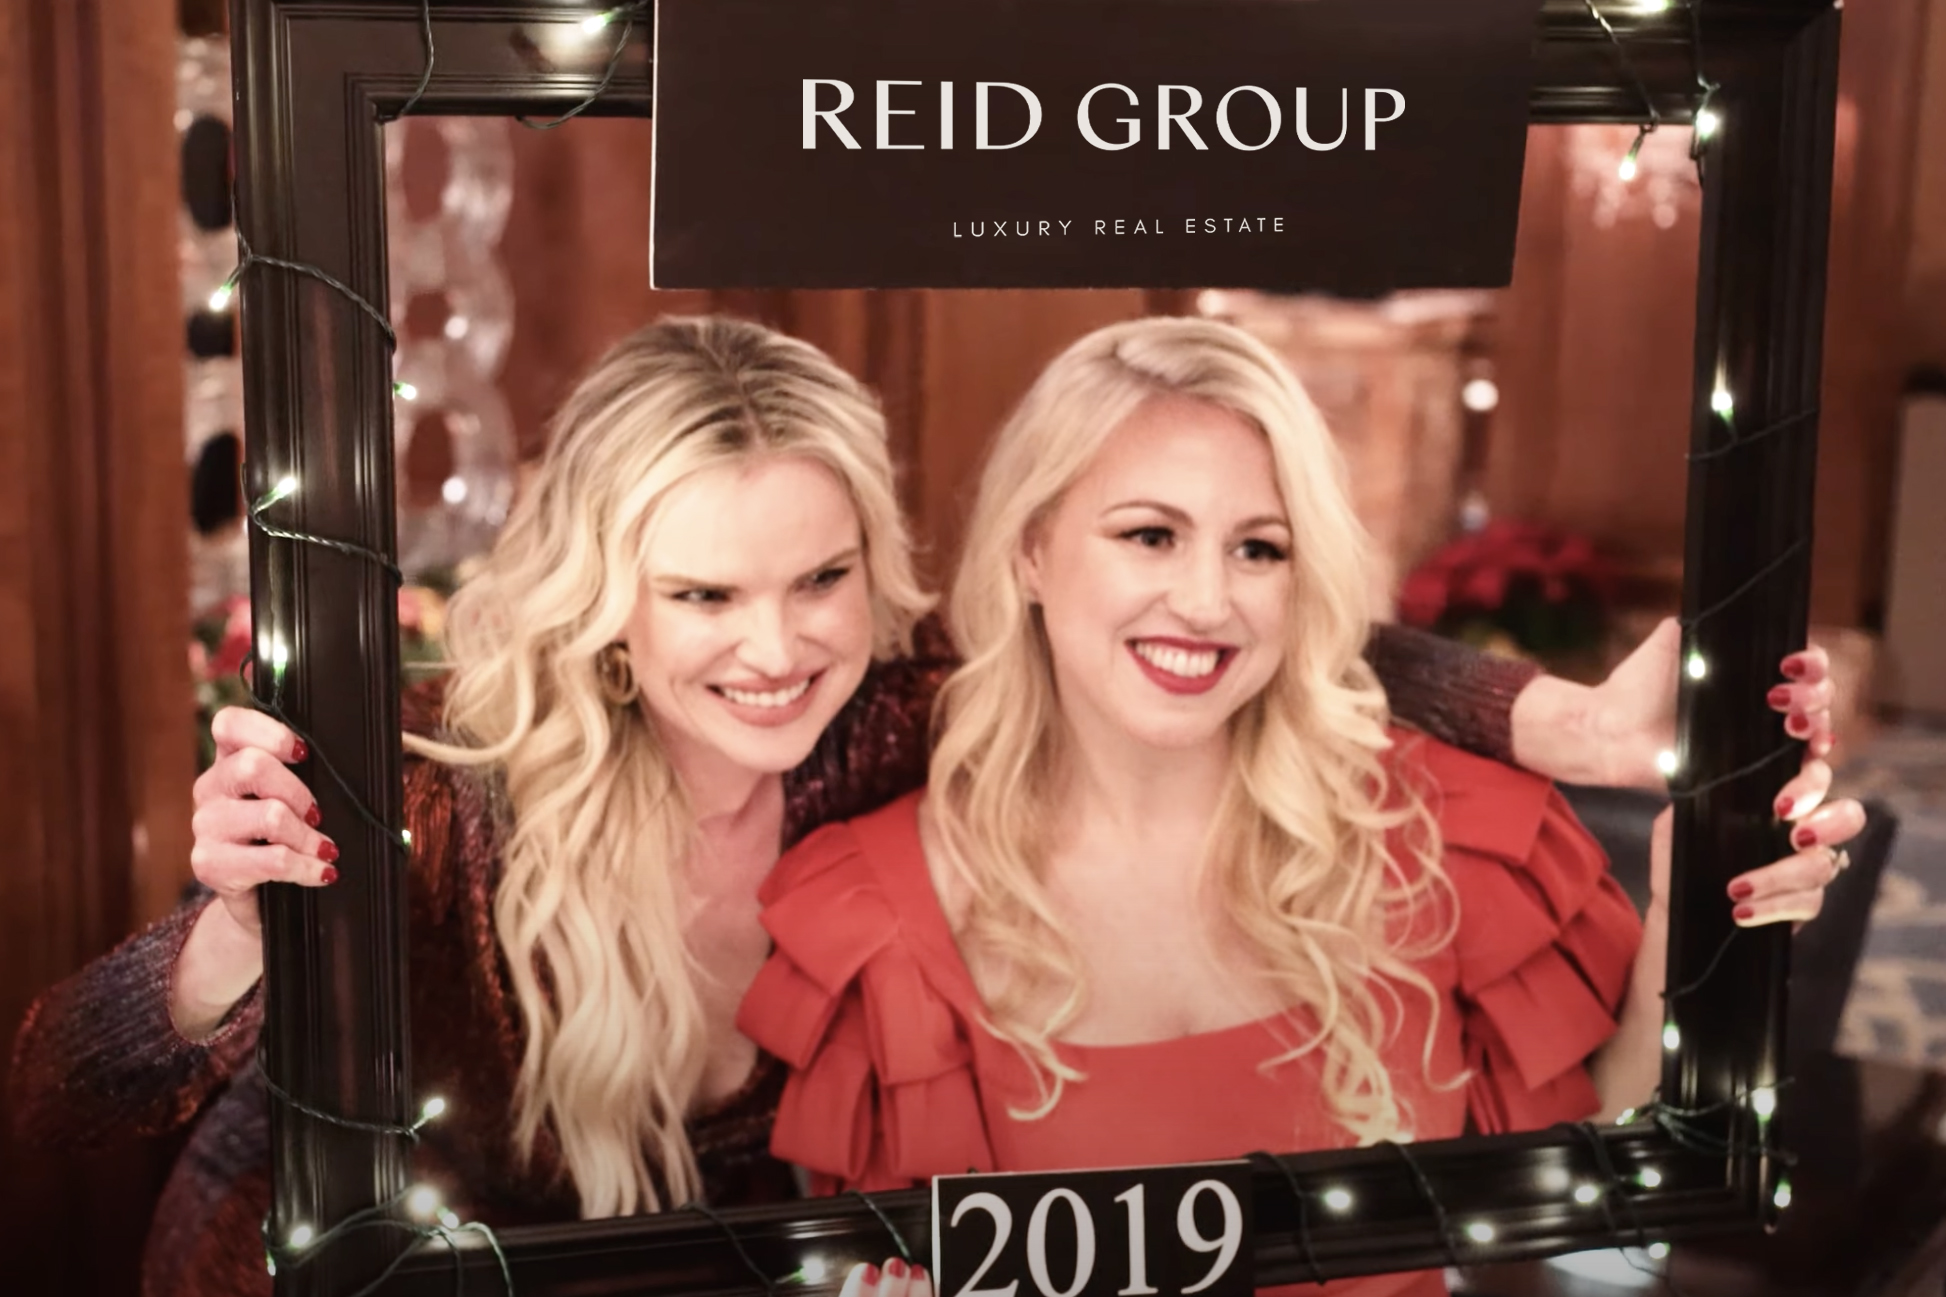 Reid Group Holiday Party At The Ritz